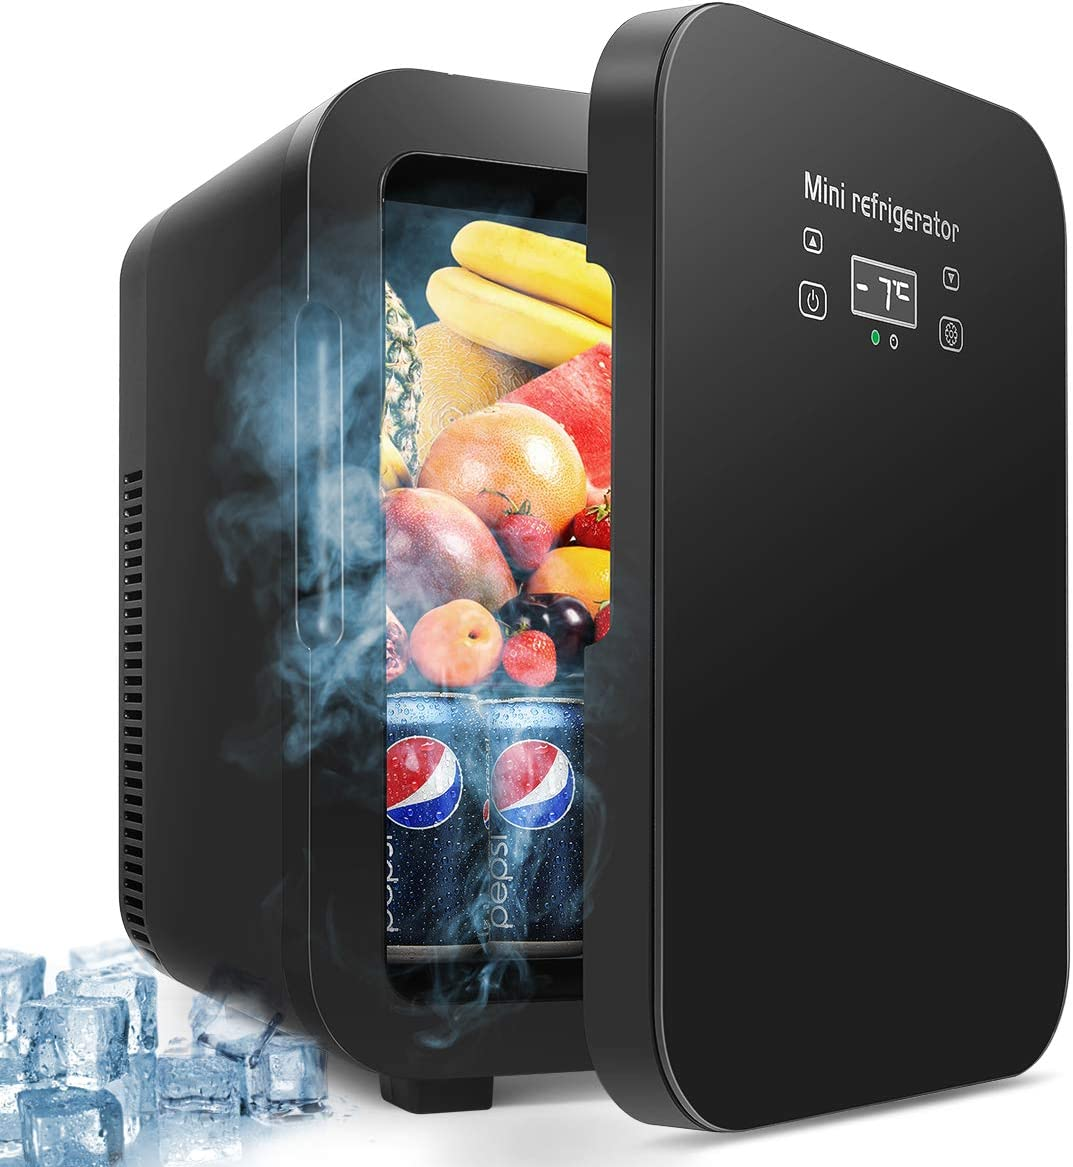 10L Mini Fridge, Portable Freezer, Large Capacity Compact Cooler and Warmer with Digital Thermostat Display and Control Temperature